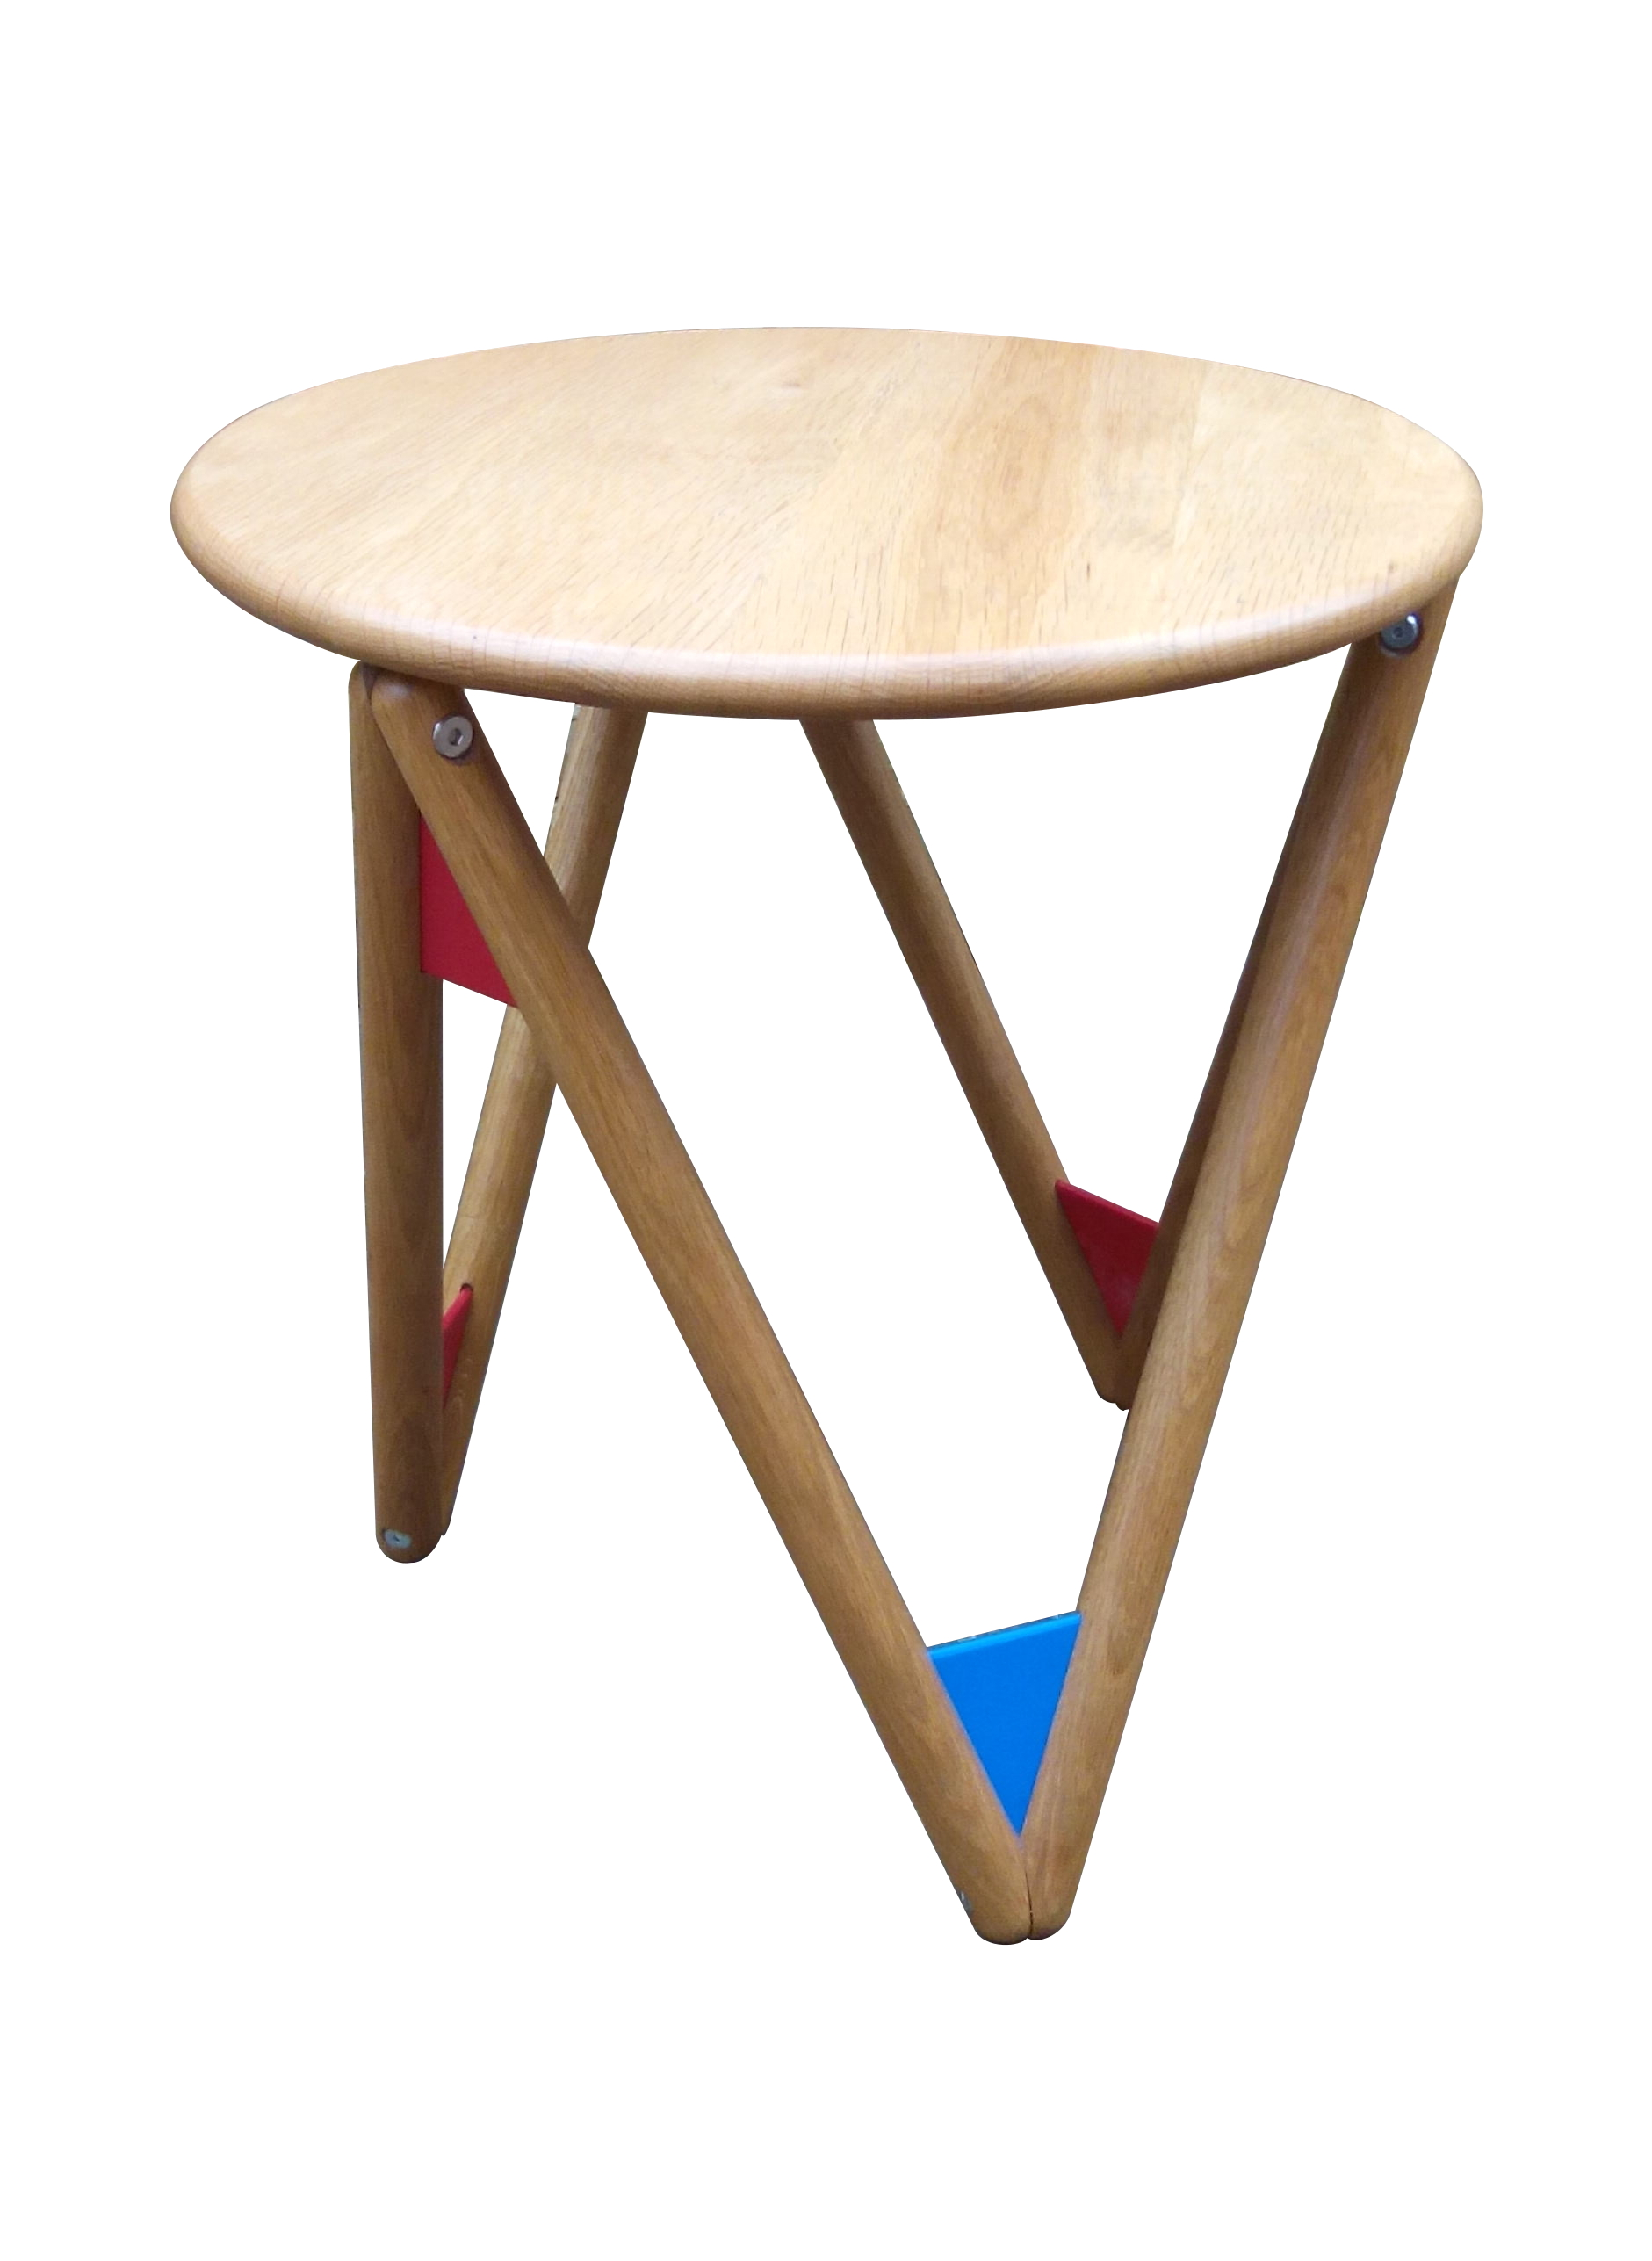 Tetra Table, oak and recycled plastic. Designer/maker: Aaron Moore